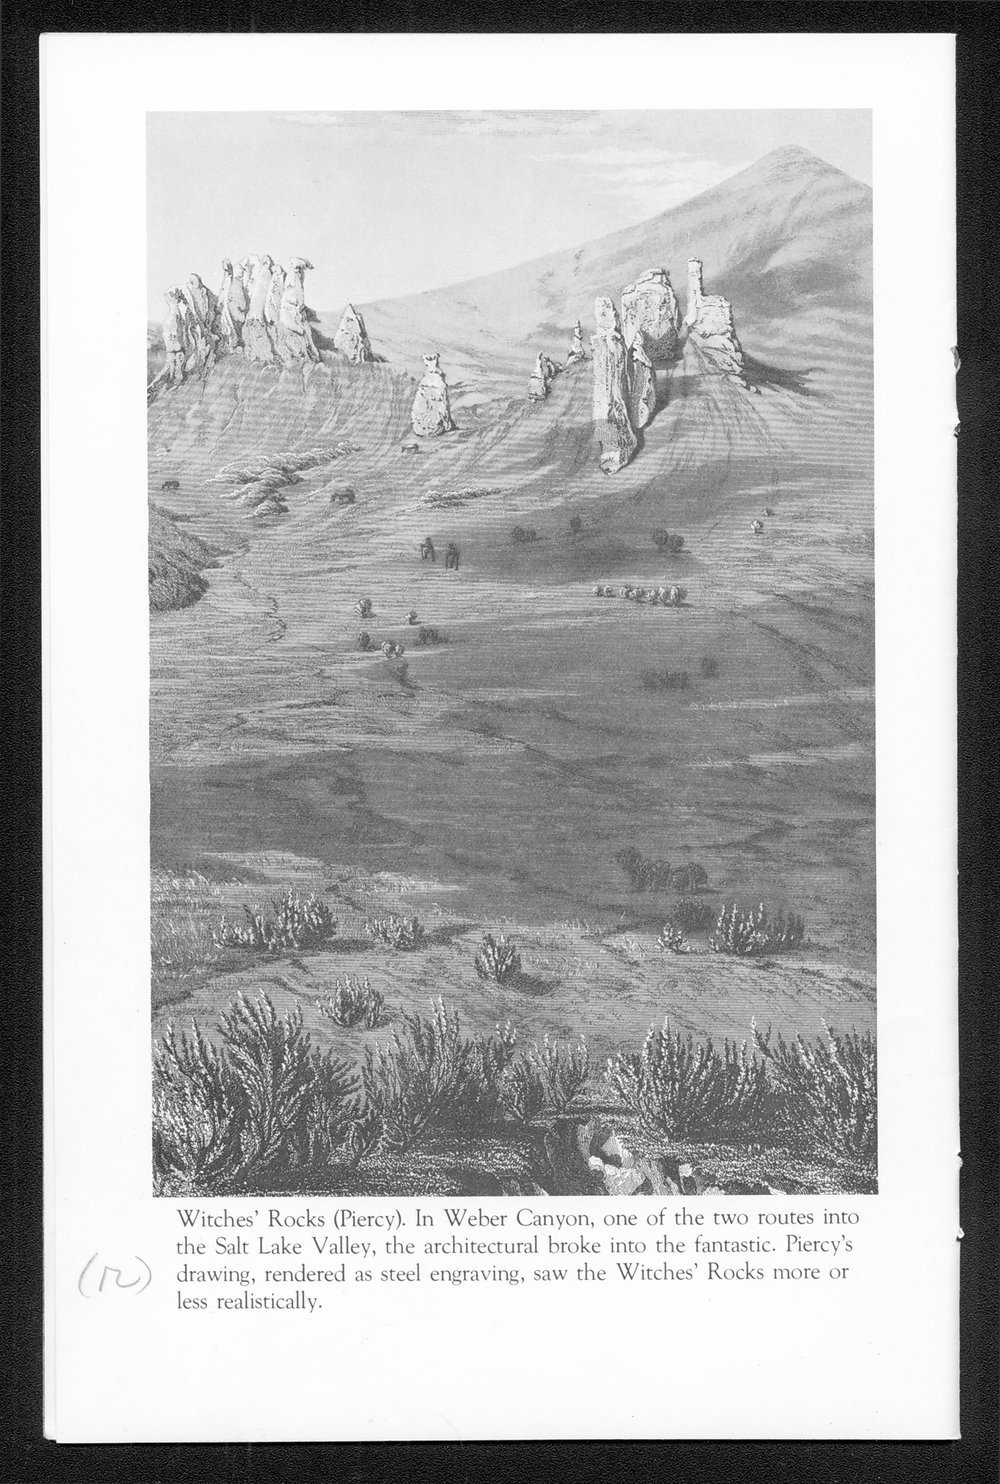 A Portfolio of Mormon Trail Engravings - 12